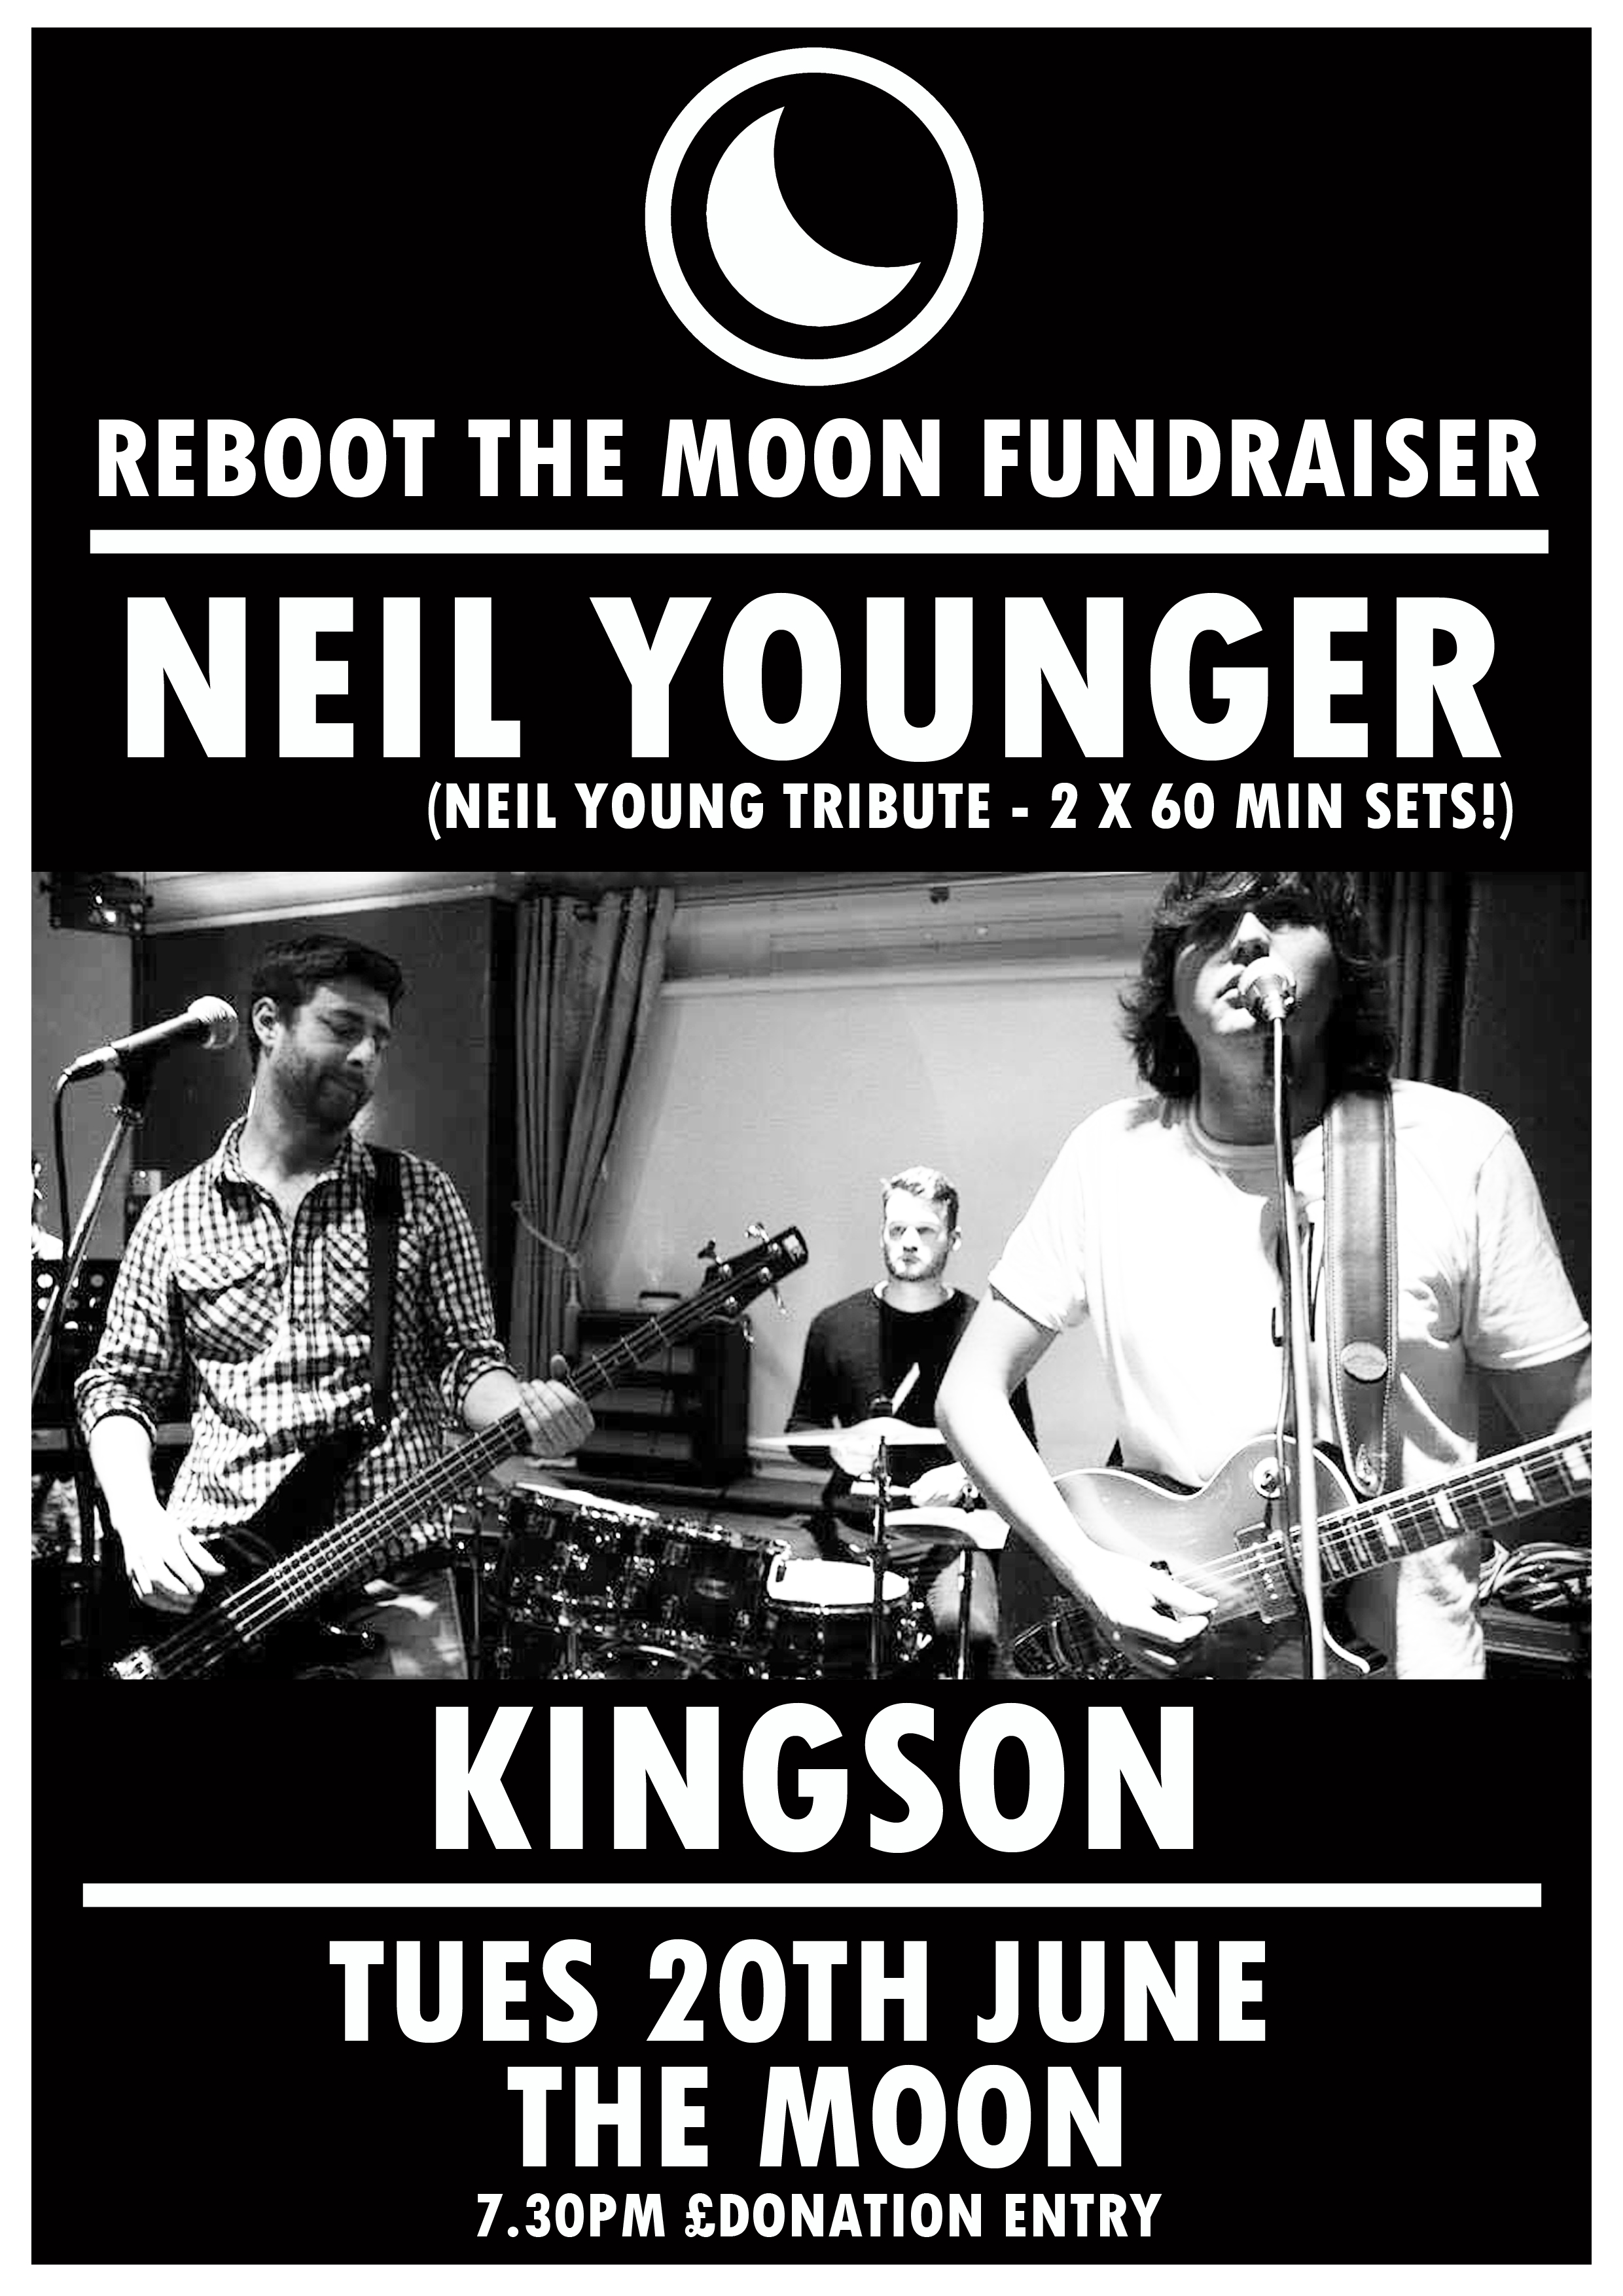 Reboot The Moon Fundraiser: Neil Younger